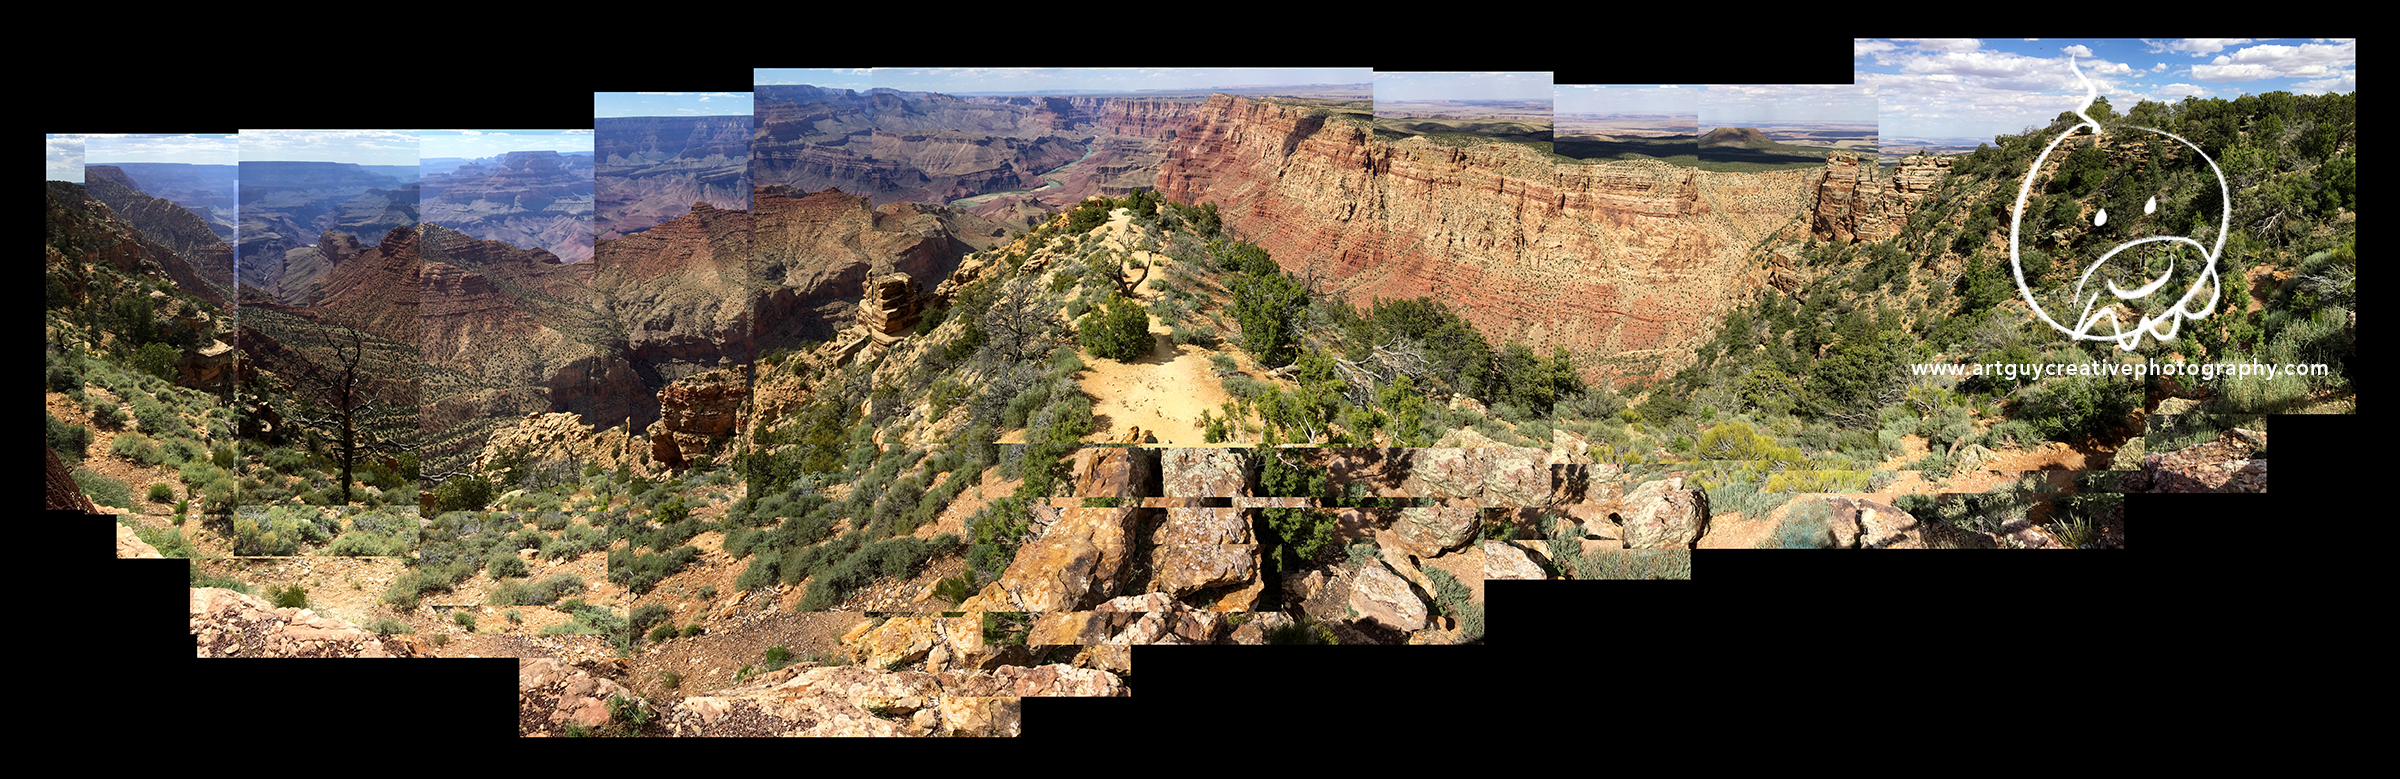 Grand Canyon Arizona Desert View Photography